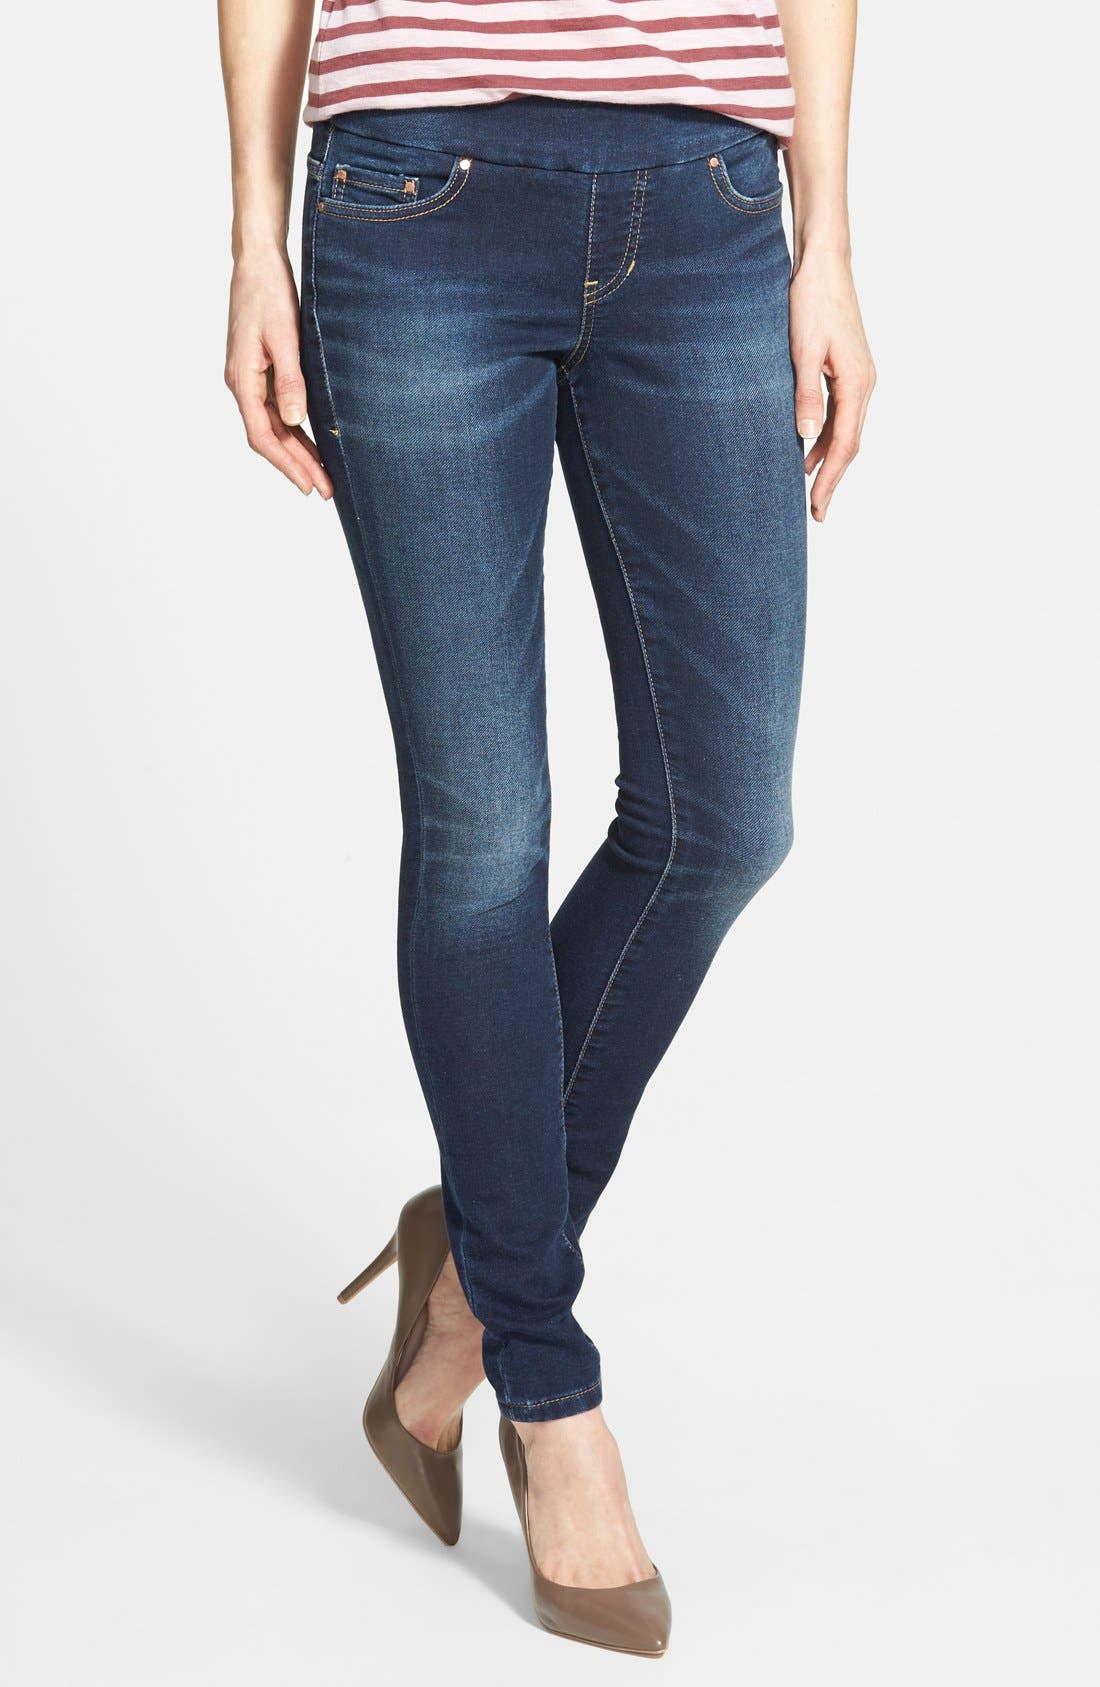 'Nora' Pull-On Stretch Knit Skinny Jeans,                             Main thumbnail 1, color,                             401